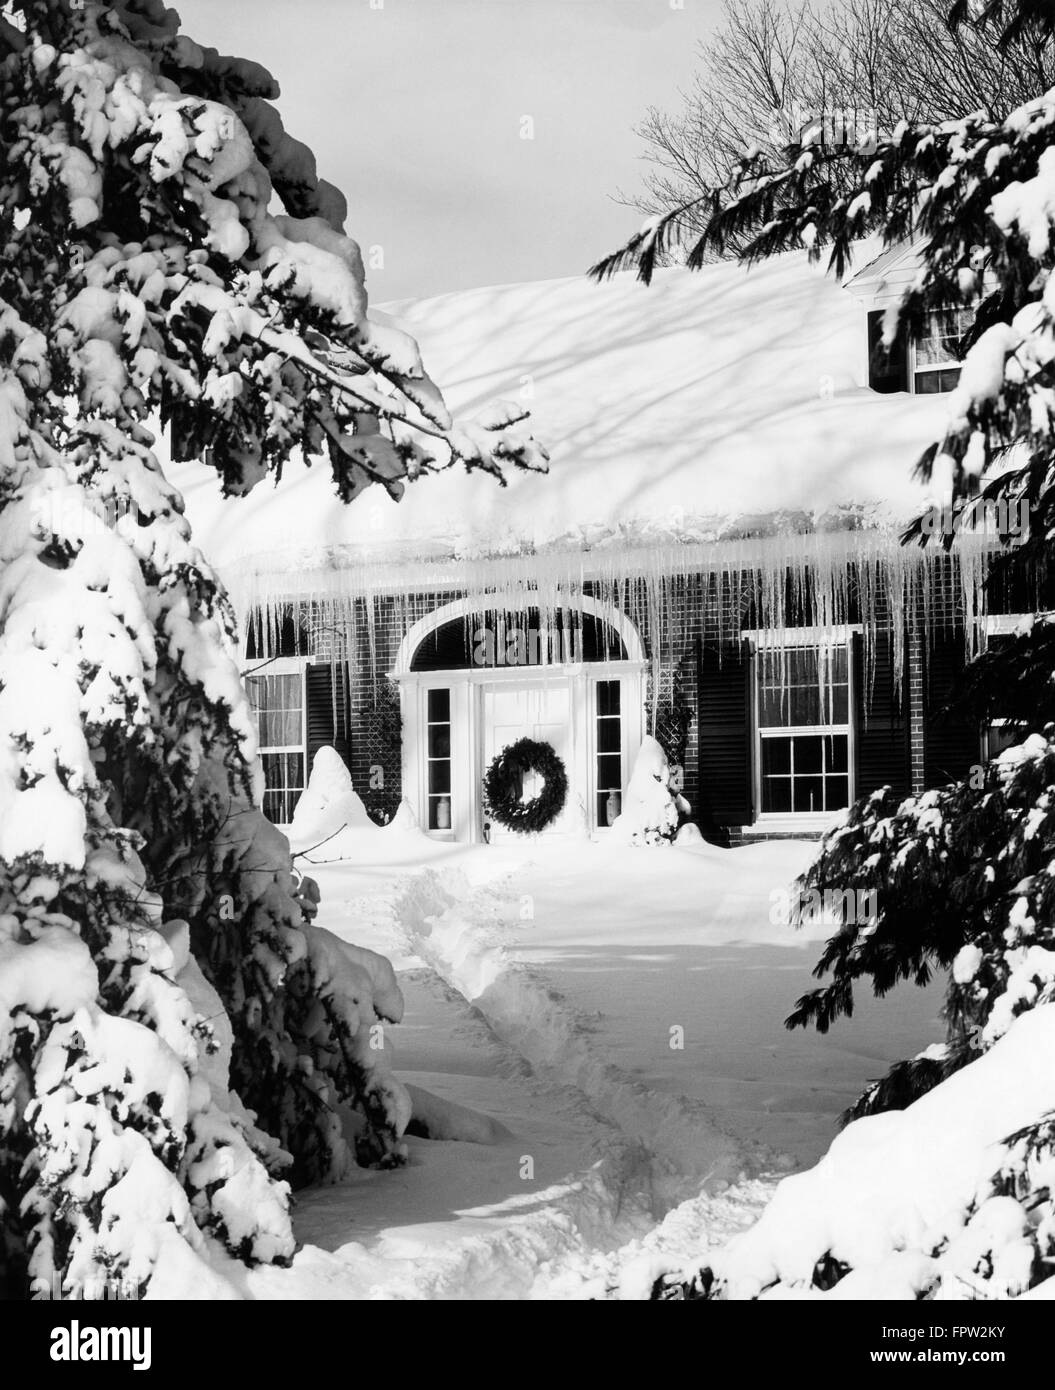 1960s SNOWED IN HOUSE IN WINTER ICICLES HANGING FROM ROOF FRONT DOOR ...